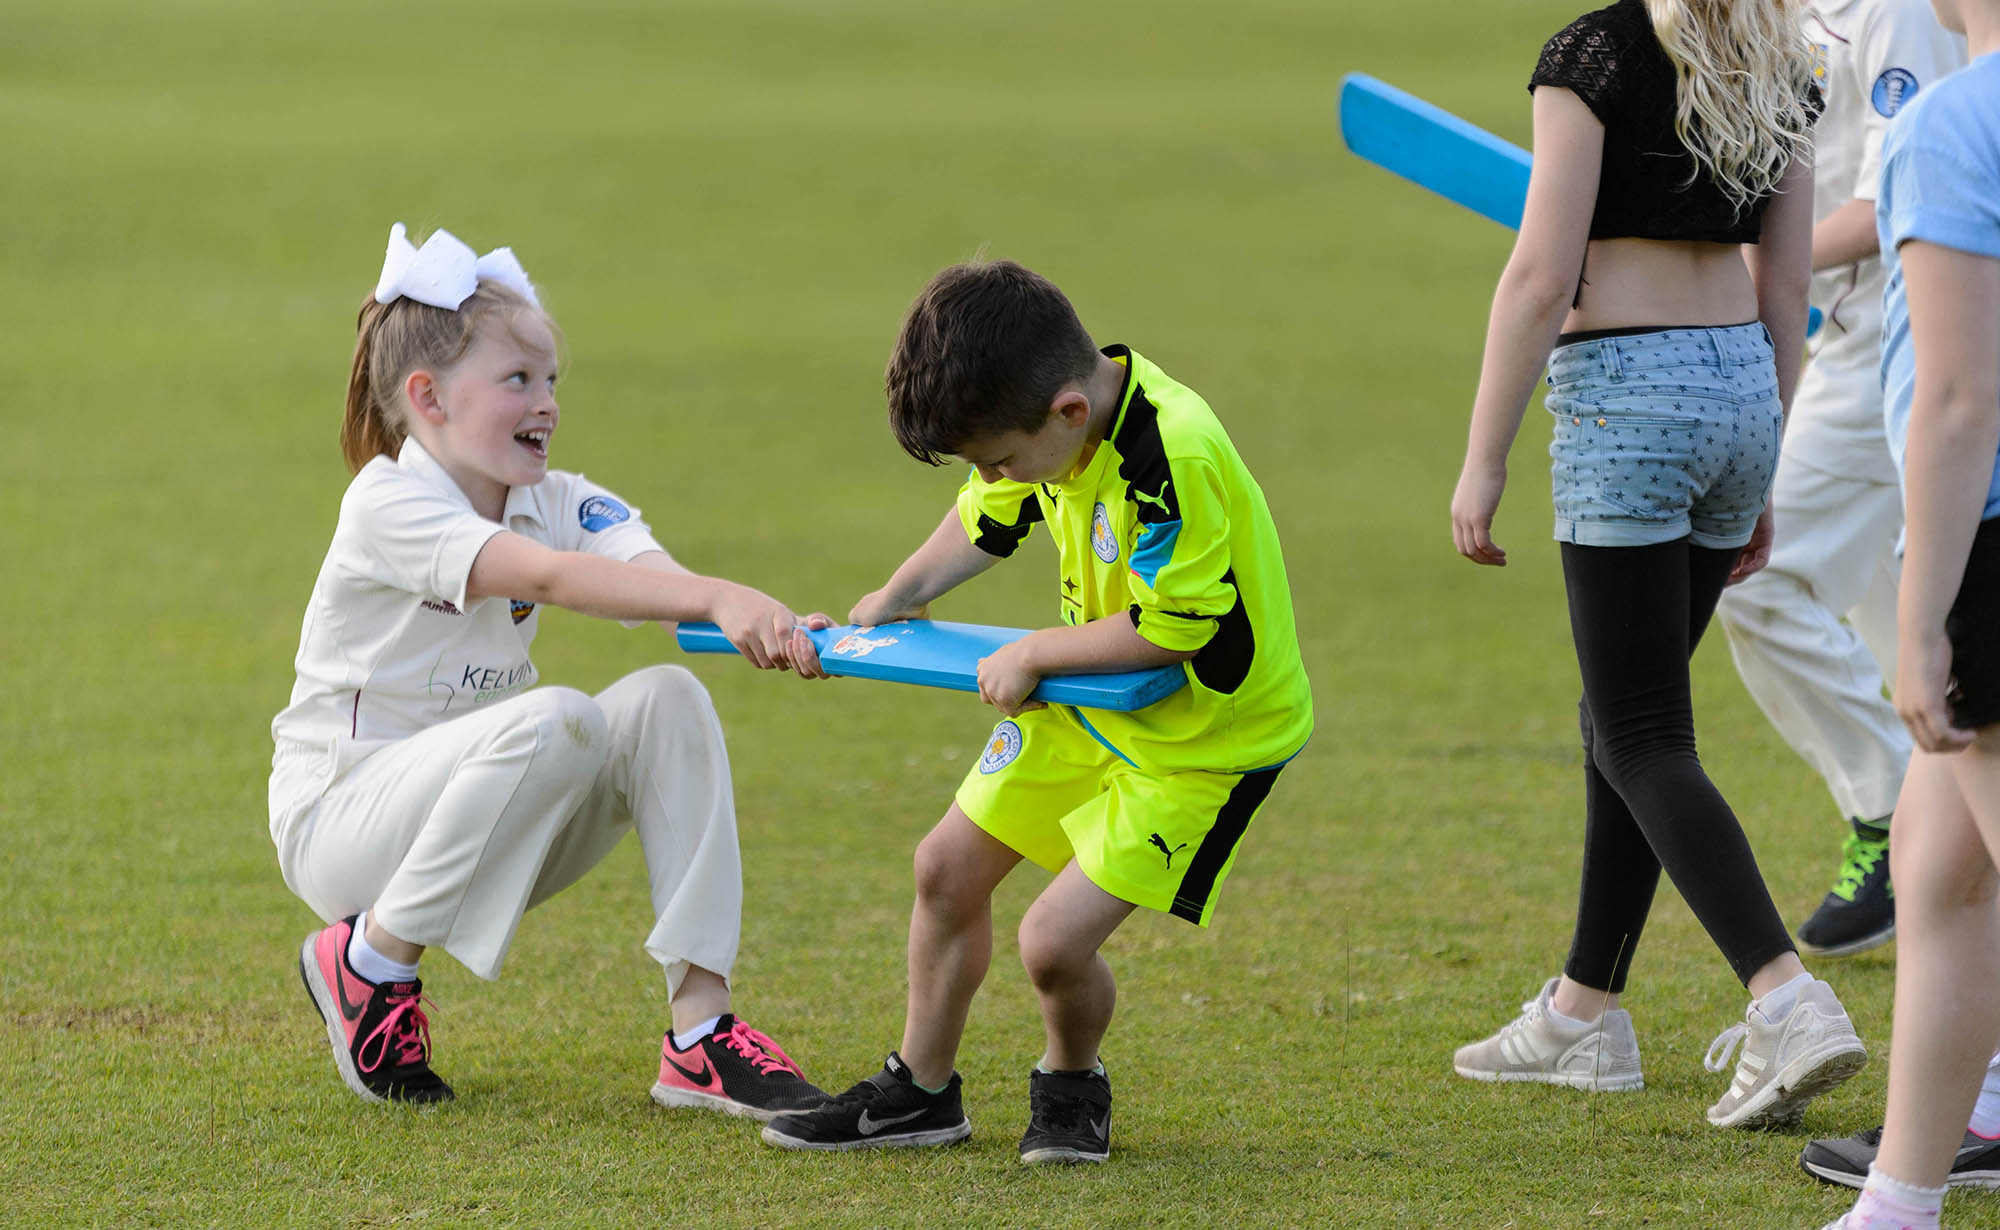 girl and boy playfully fighting over a cricket bat